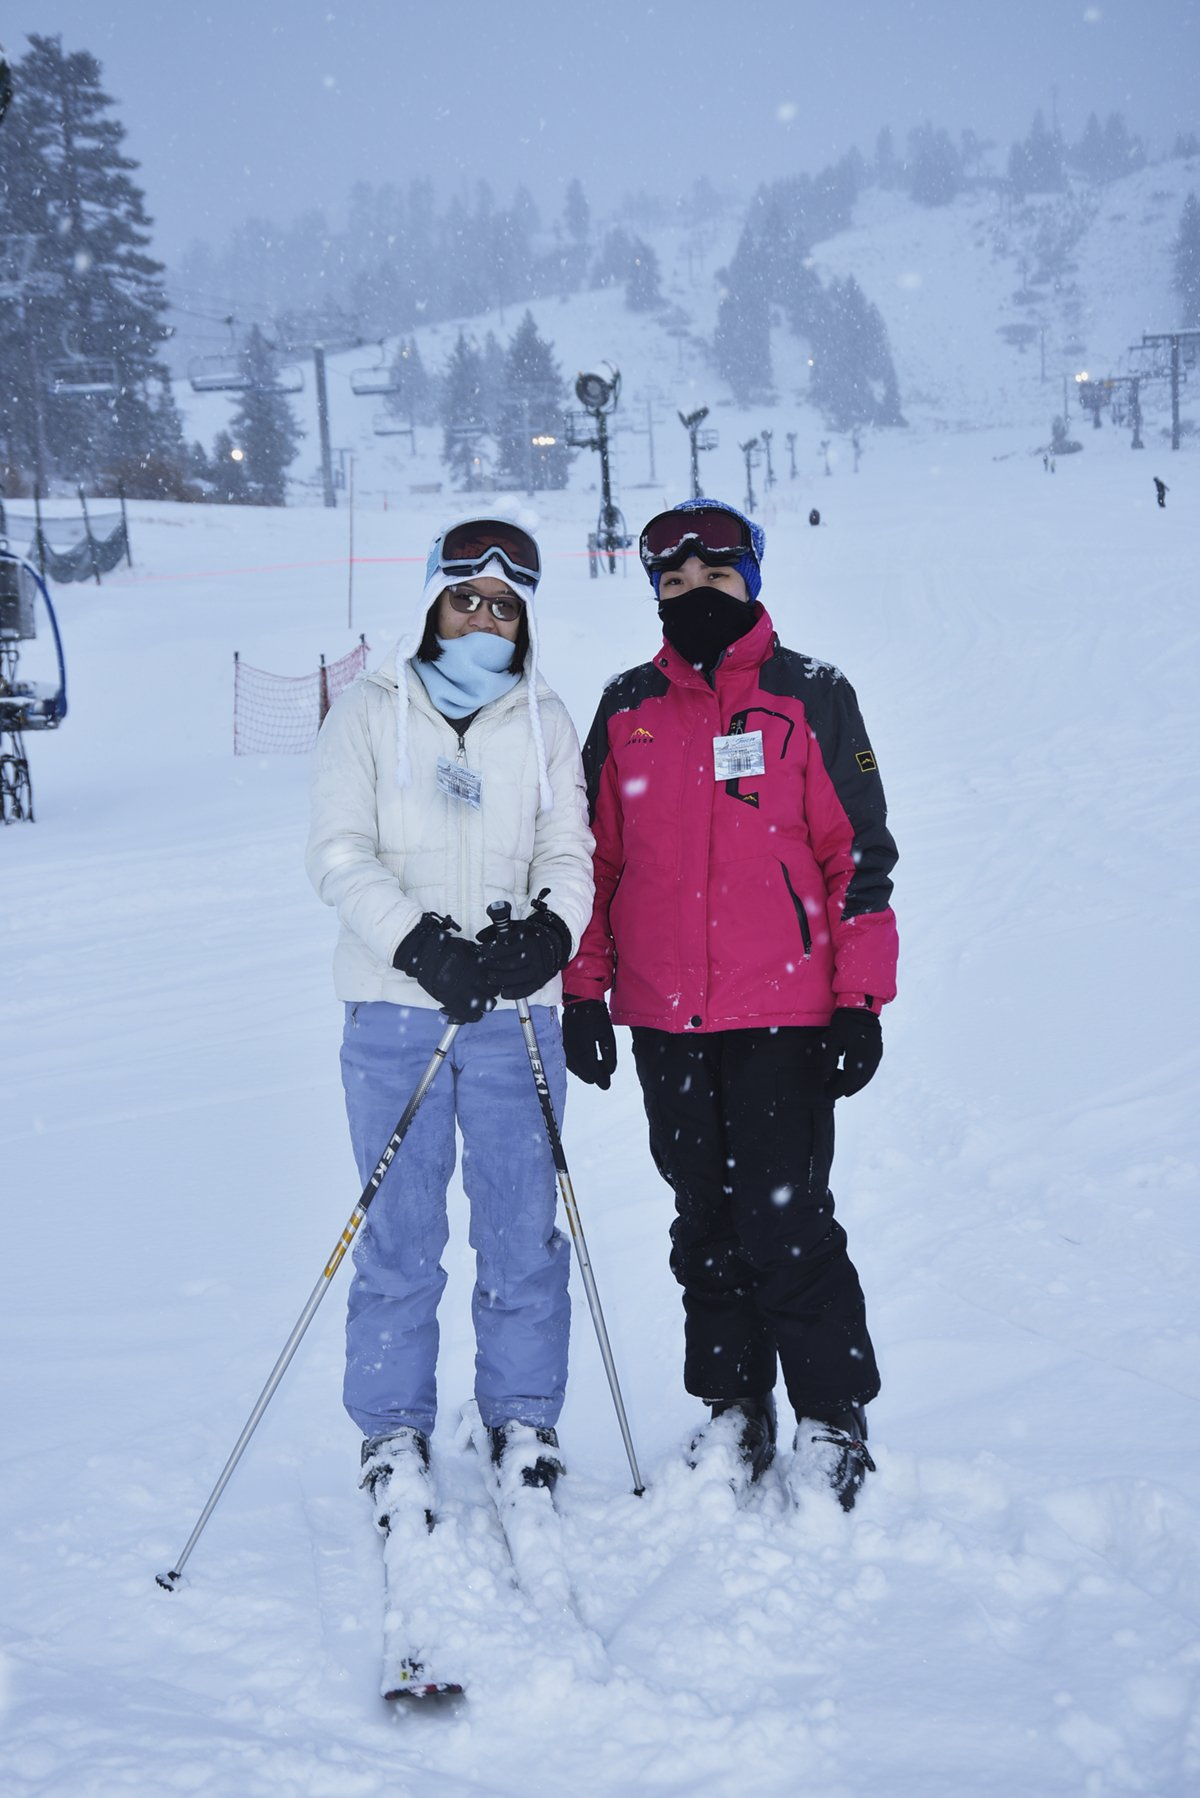 Two happy skiiers pose while snow falls behind them